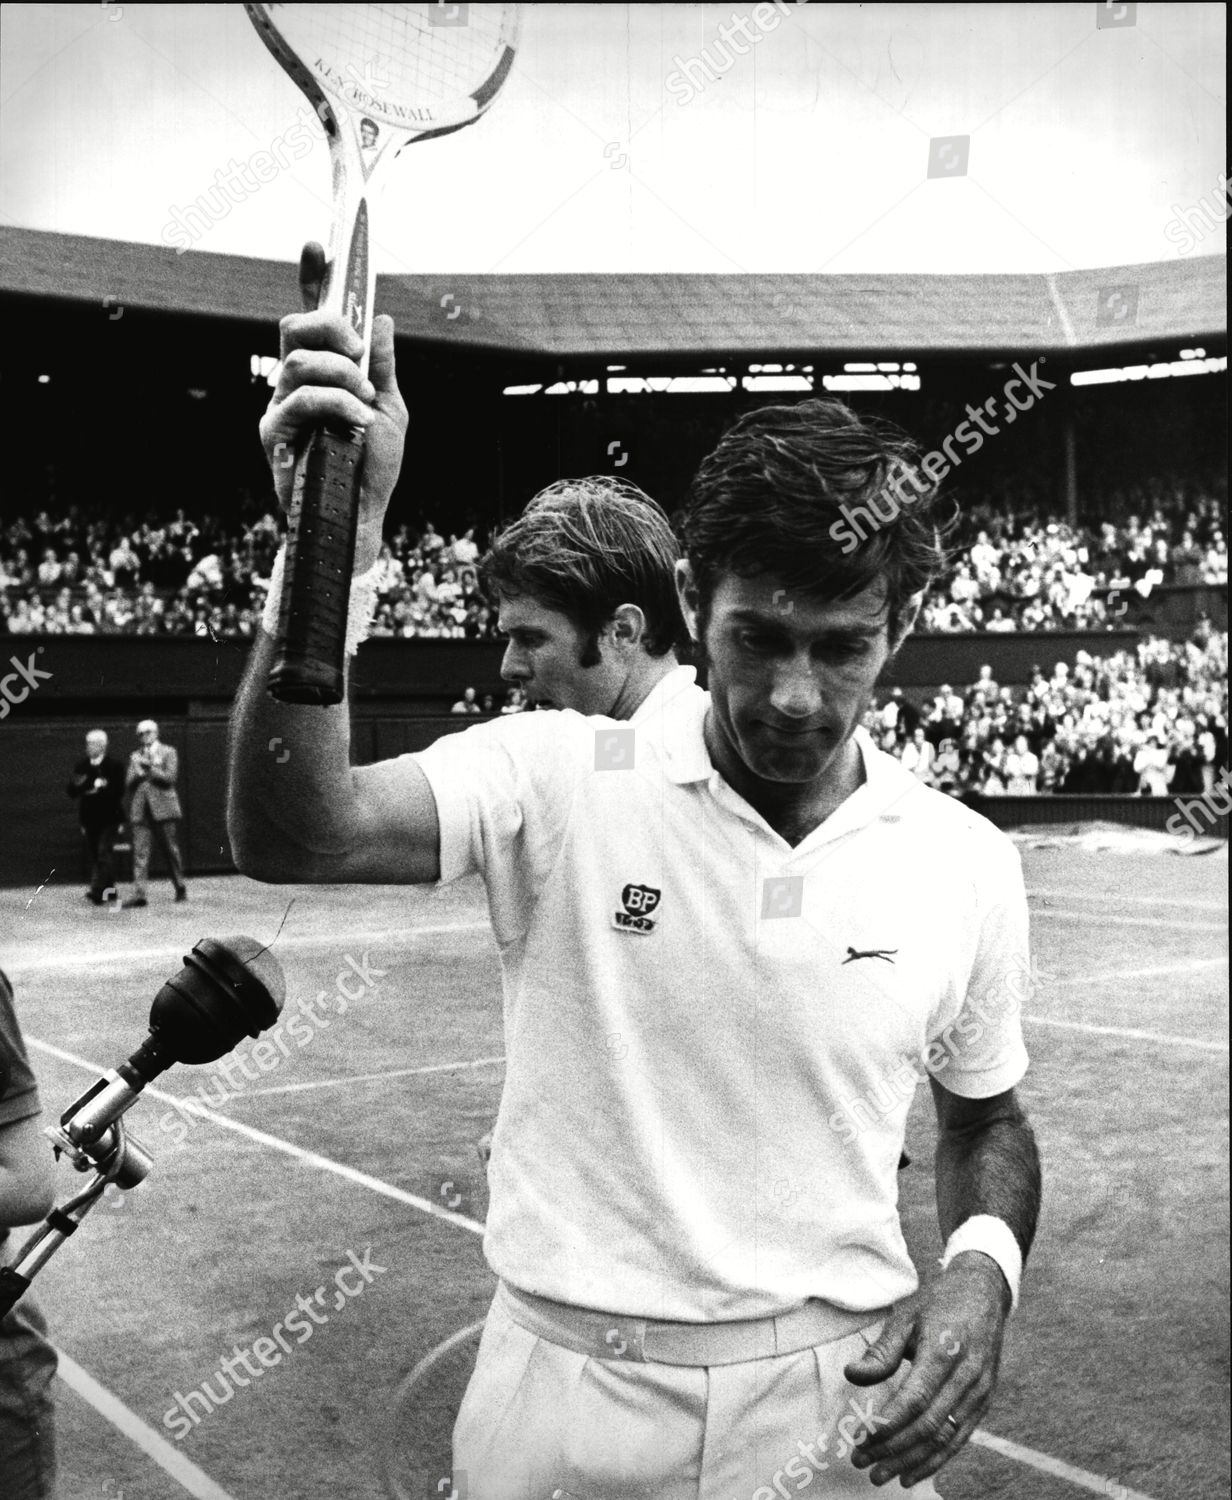 Stock photo of Ken Rosewall Raising His Racquet In The Air After Beating Opponent Cliff Richey At Wimbledon.